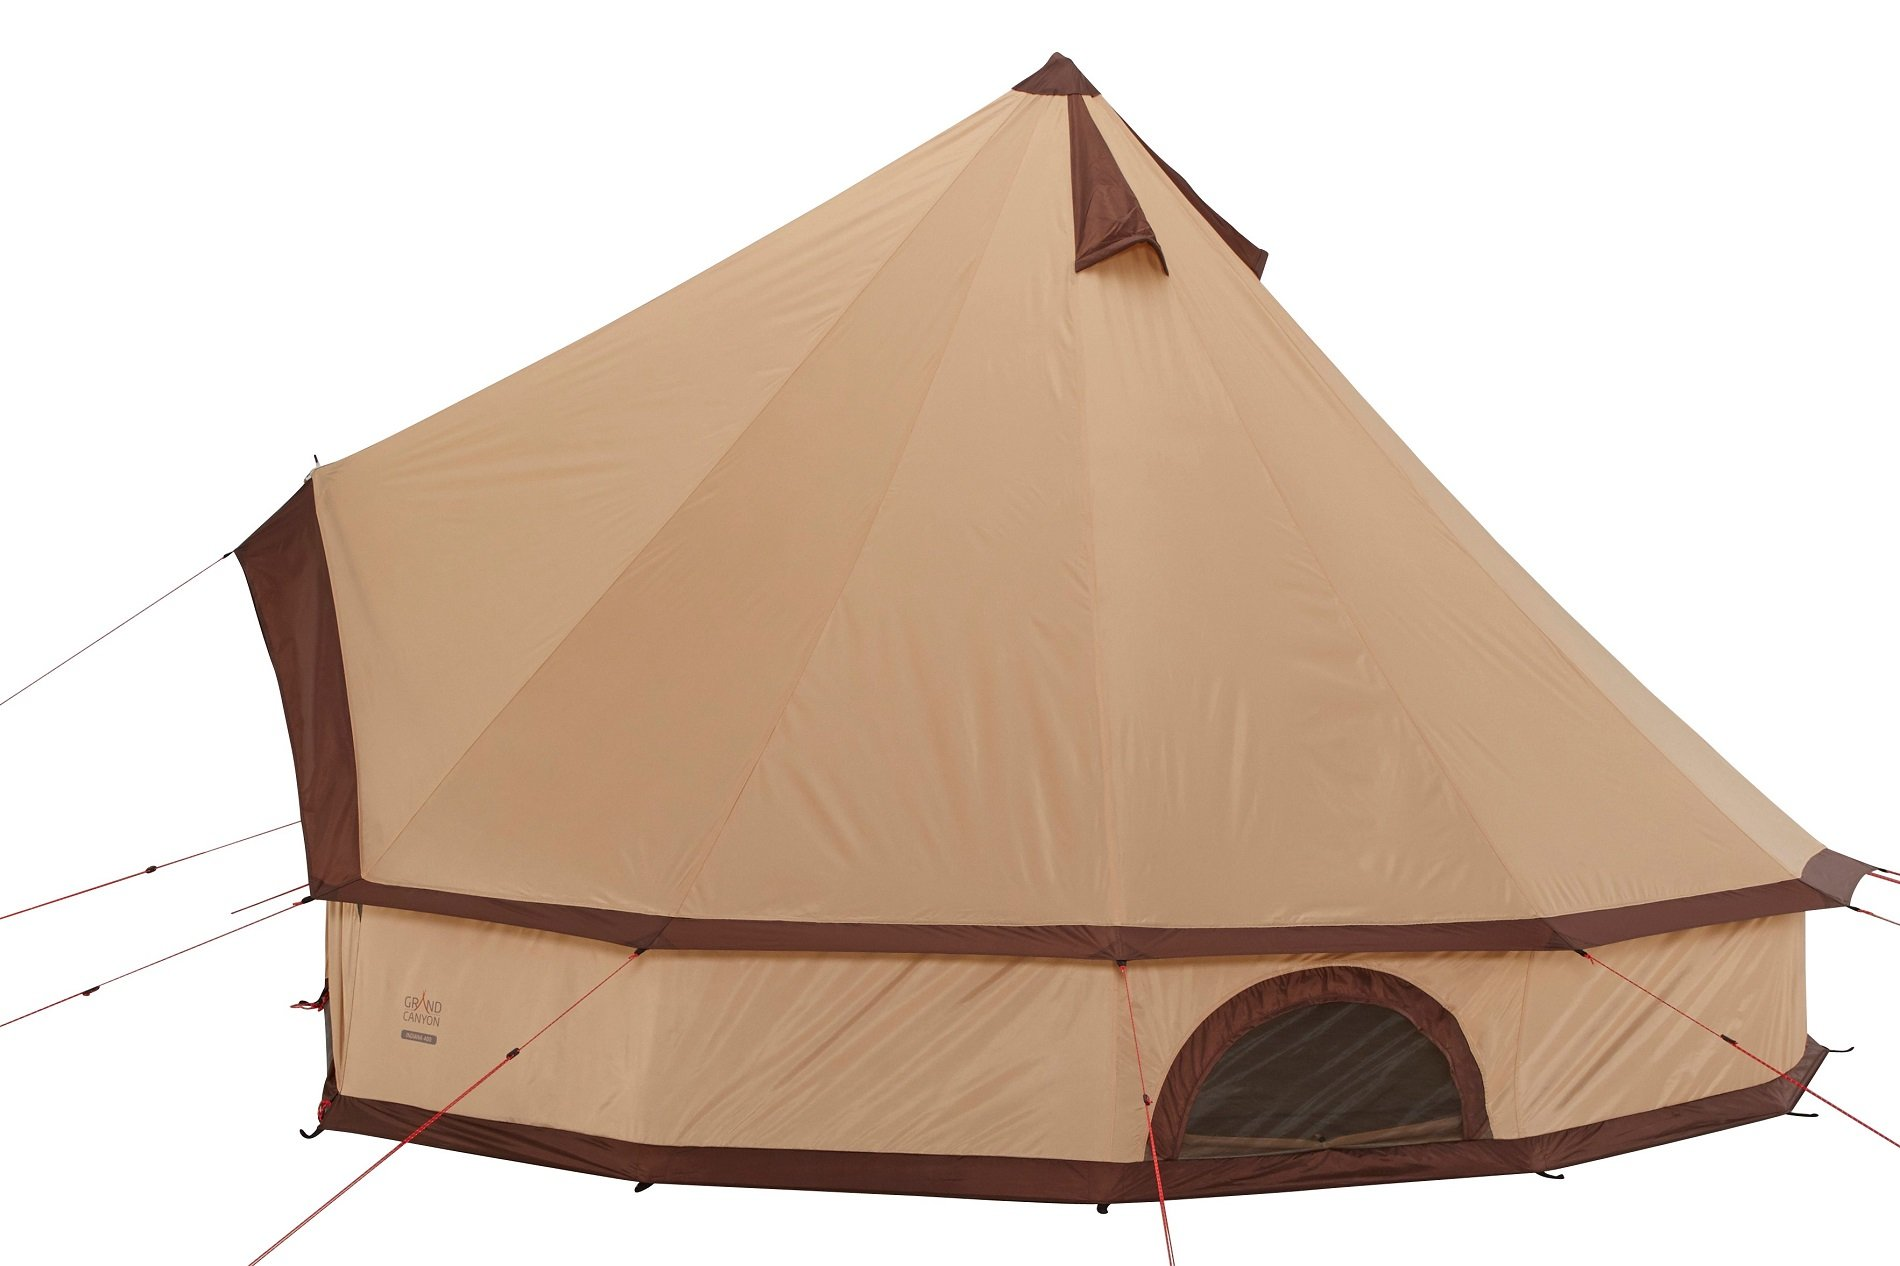 GRAND CANYON Indiana - round tent ( 8-person tent), beige, 602020 4